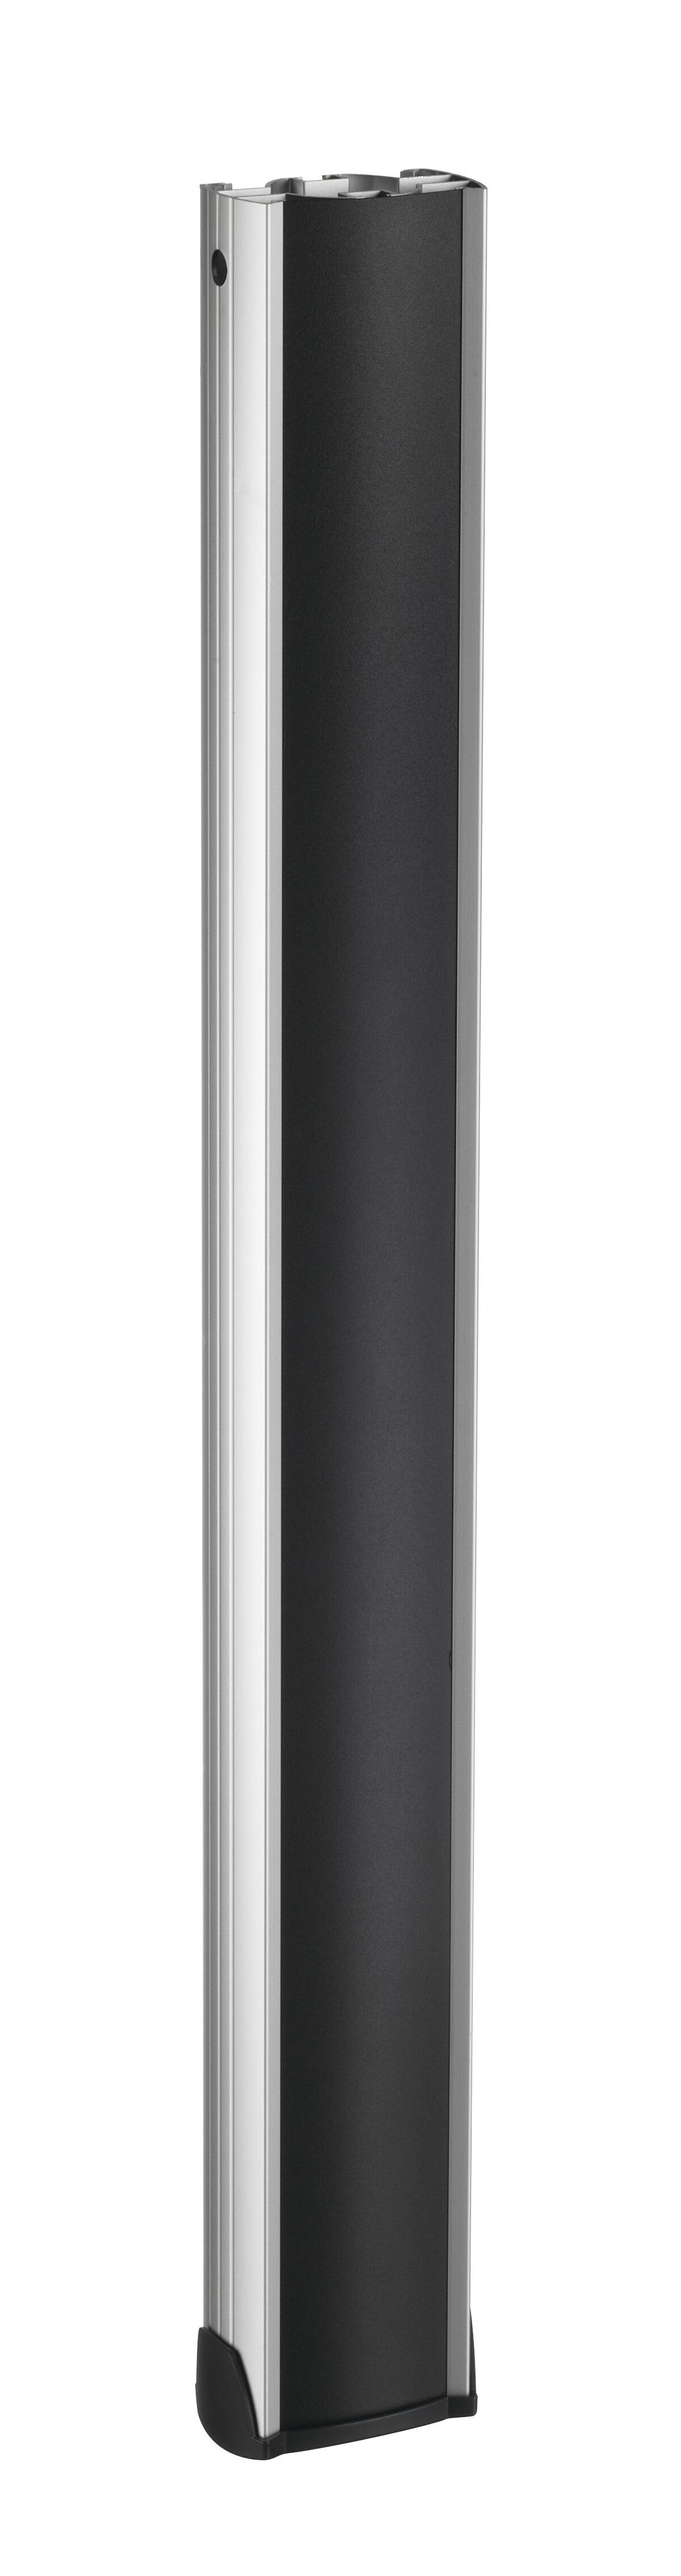 Vogel's PUC 2515 Tube 150 cm, silver - Product